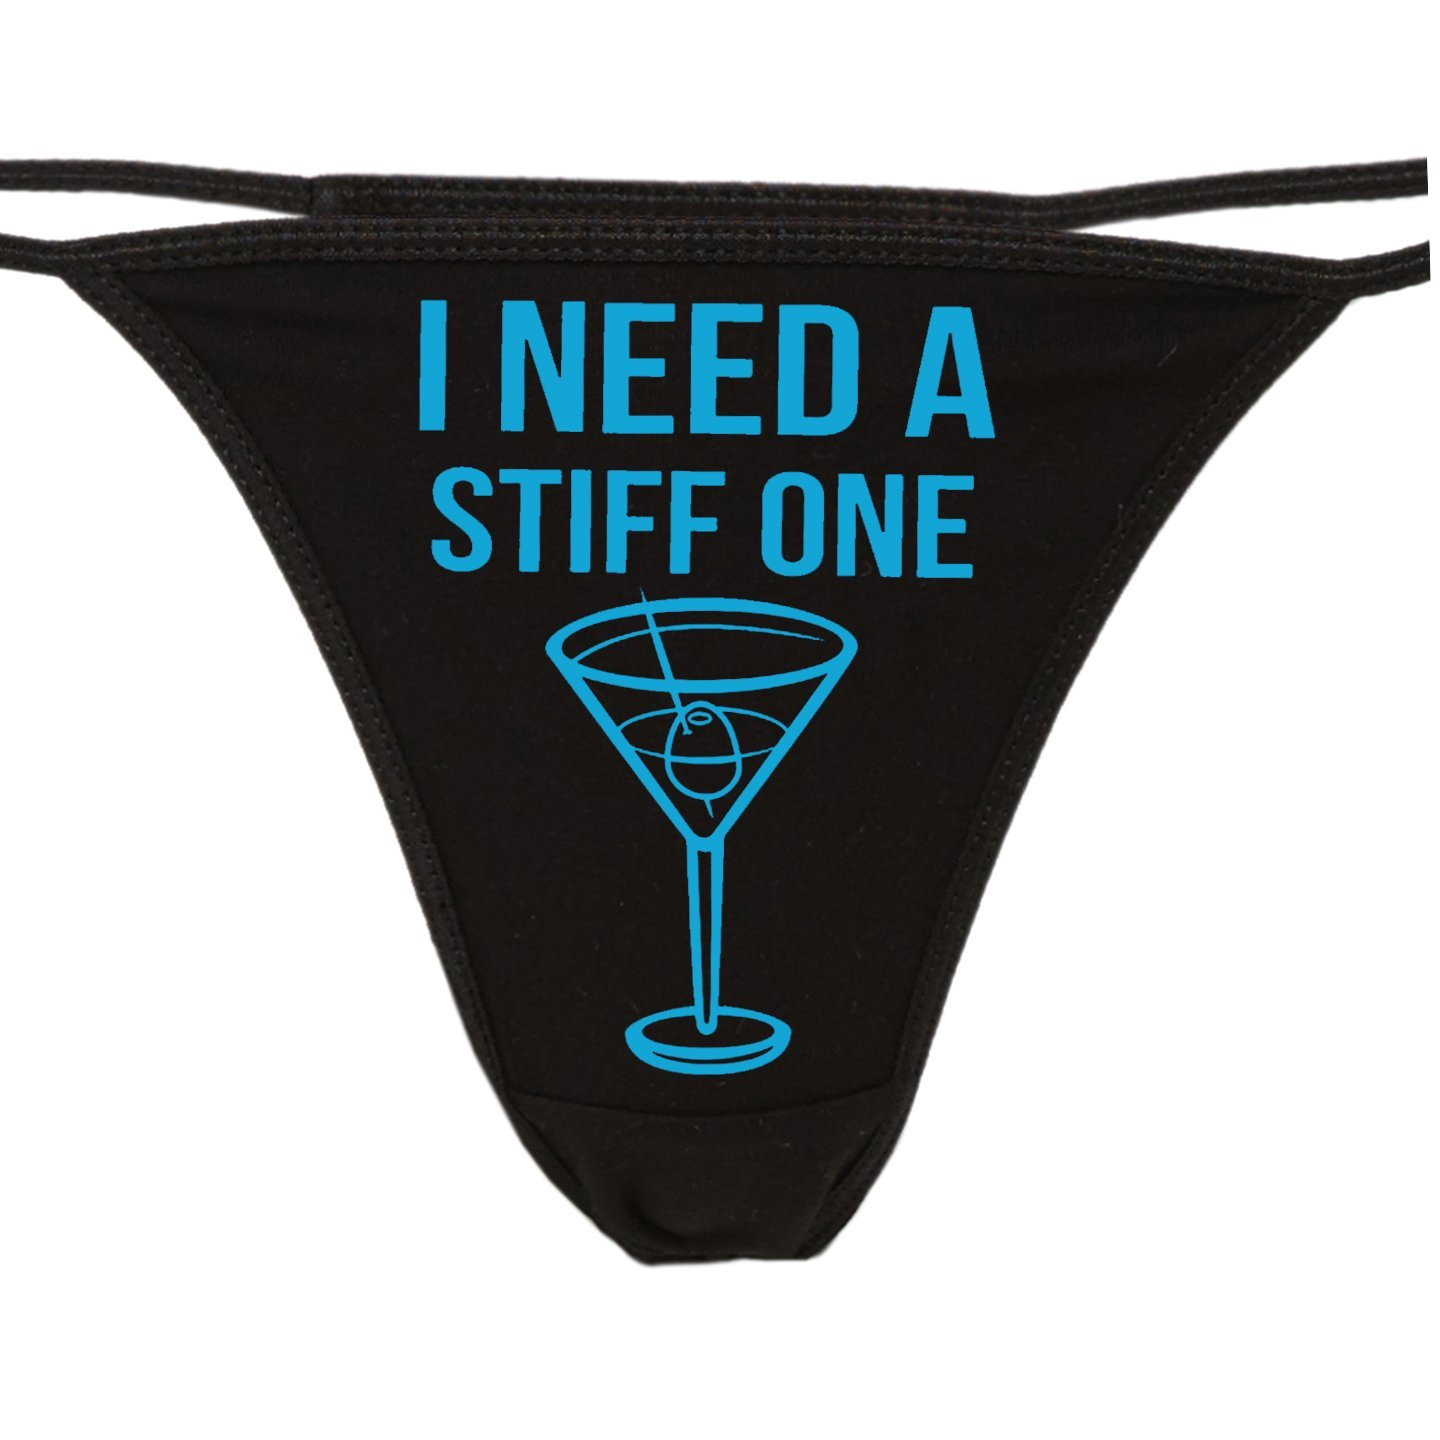 Knaughty Knickers - I Need A Stiff One Black Thong - Fun Flirty Underwear - Panty Game Bachelorette Bridal Lingerie Shower …